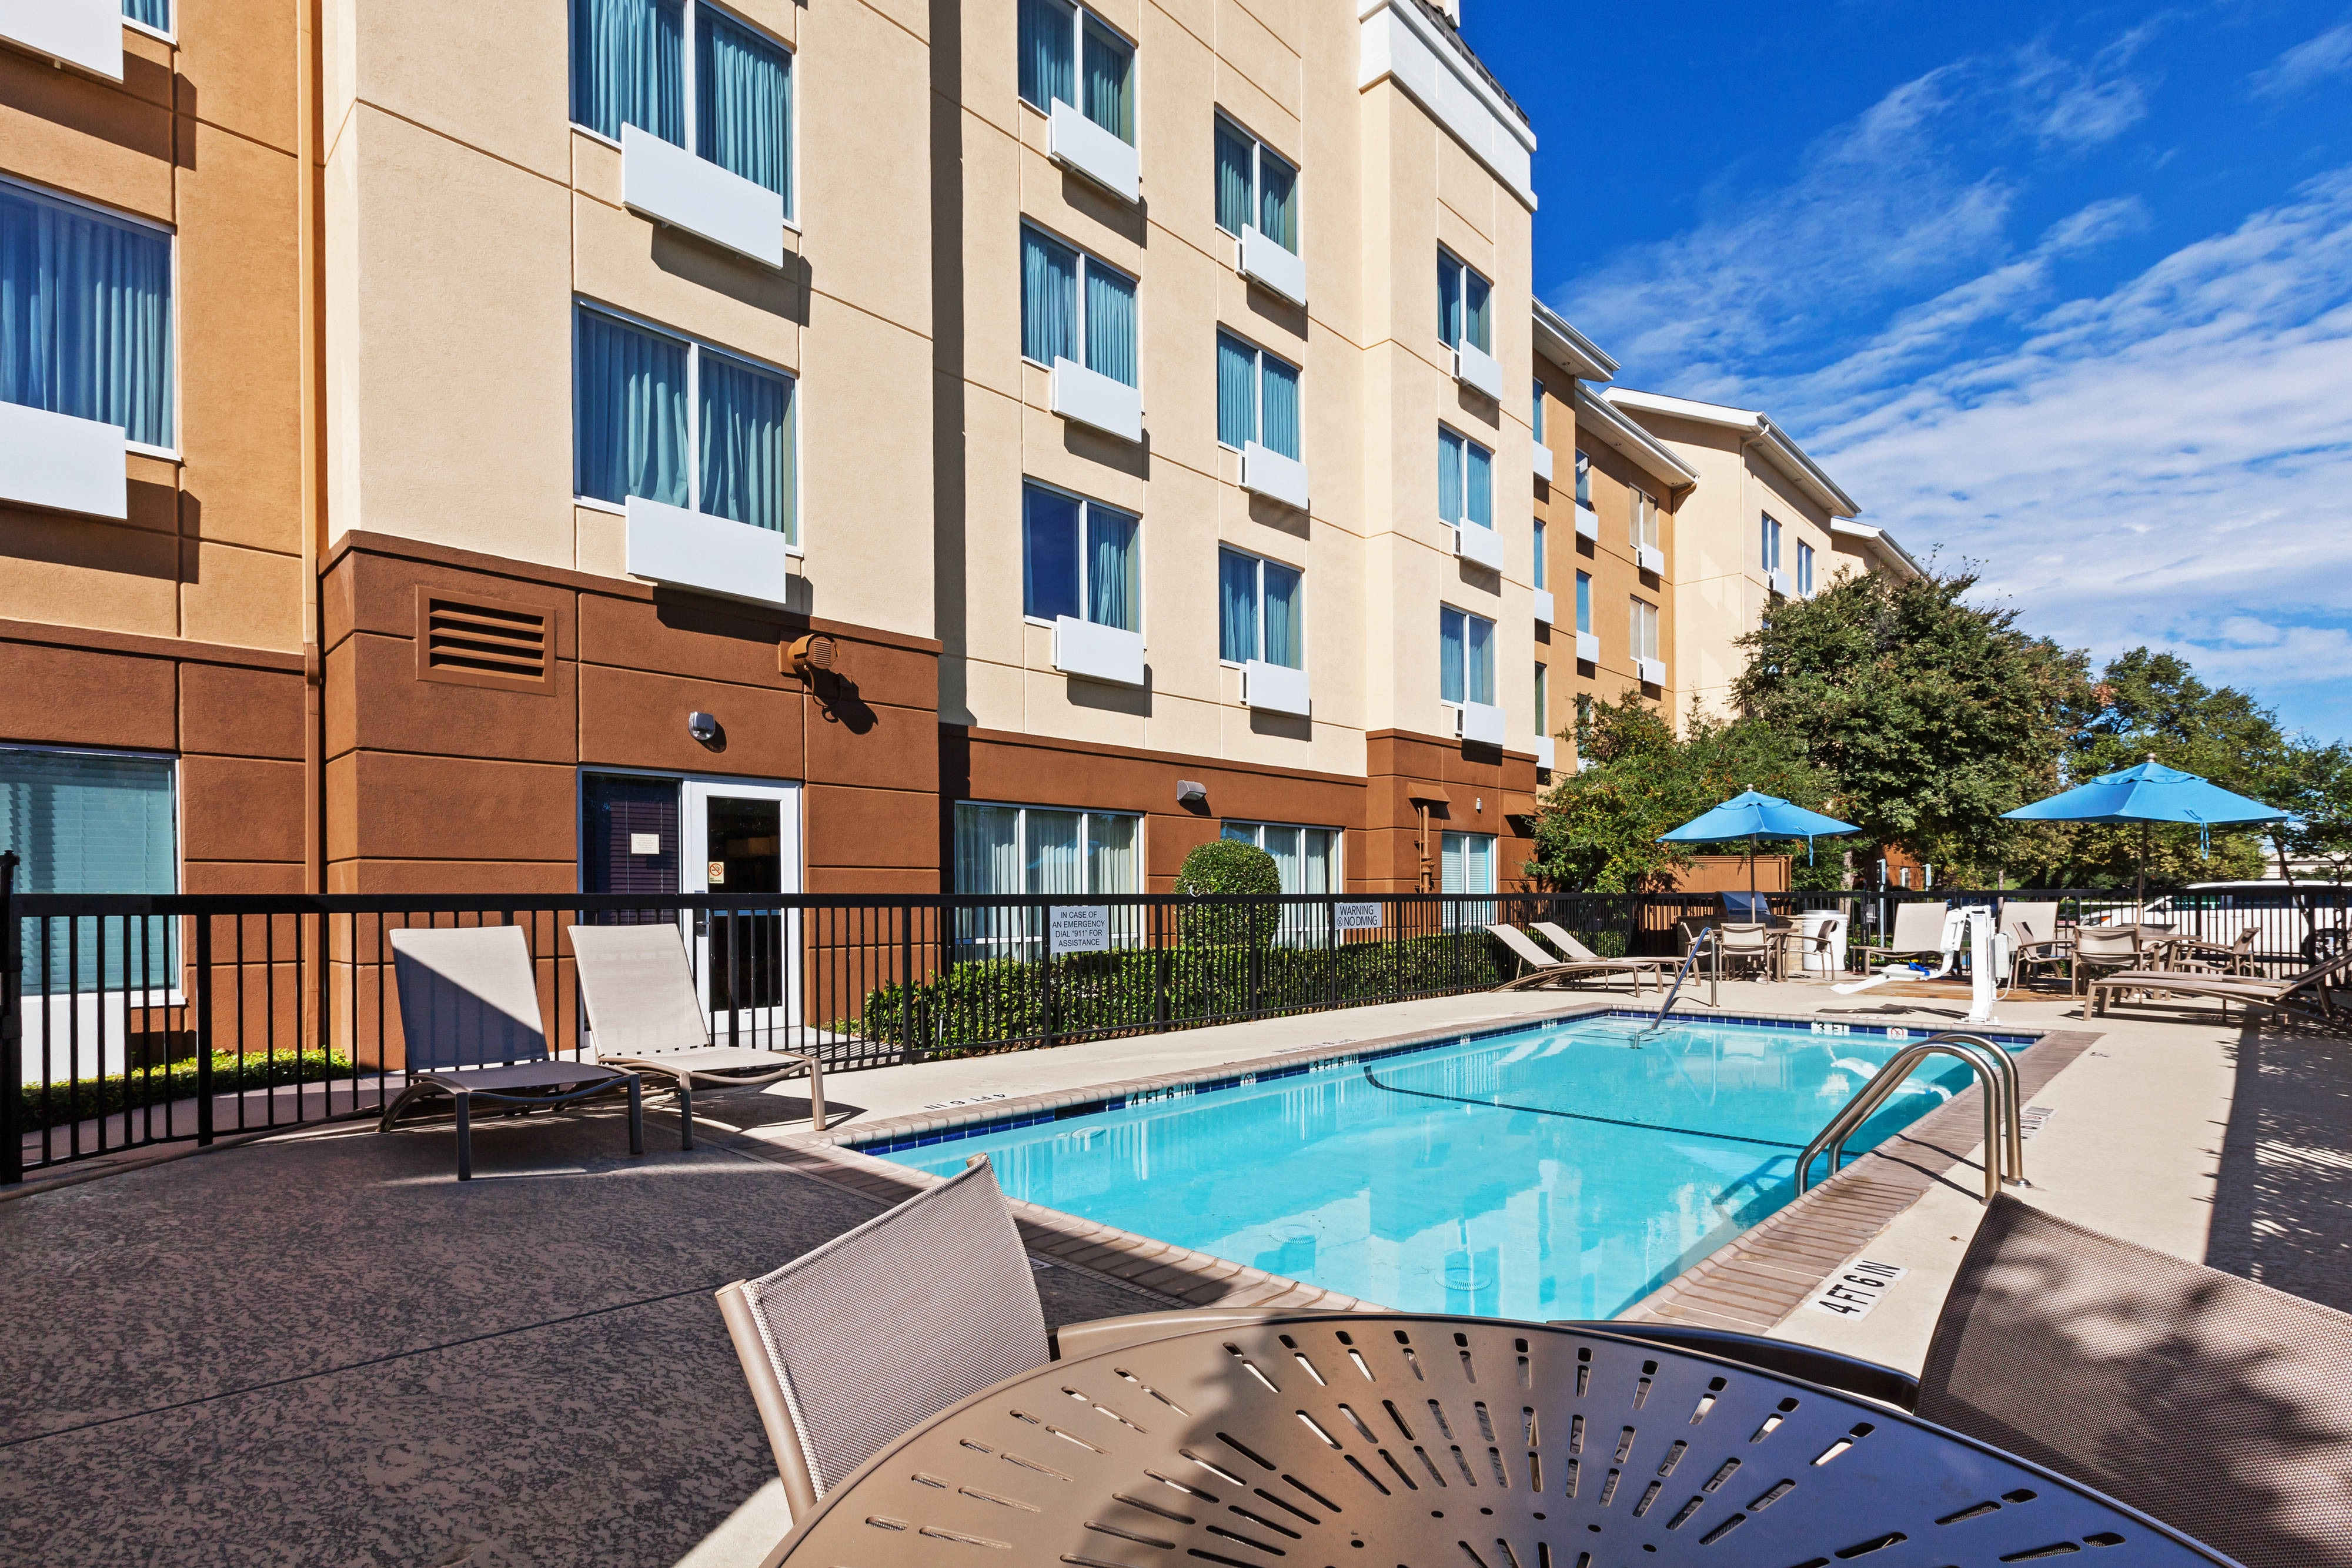 Austin Texas Hotel Outdoor Pool